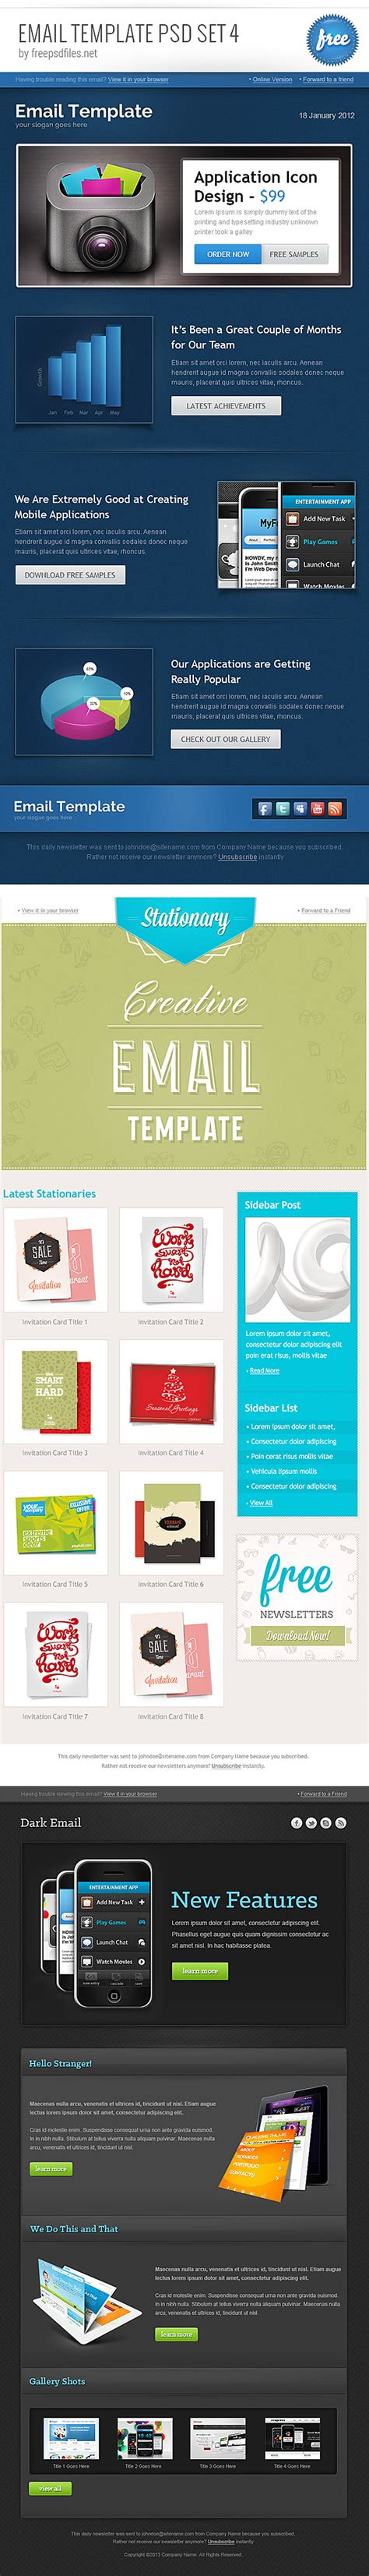 email template psd set psd files